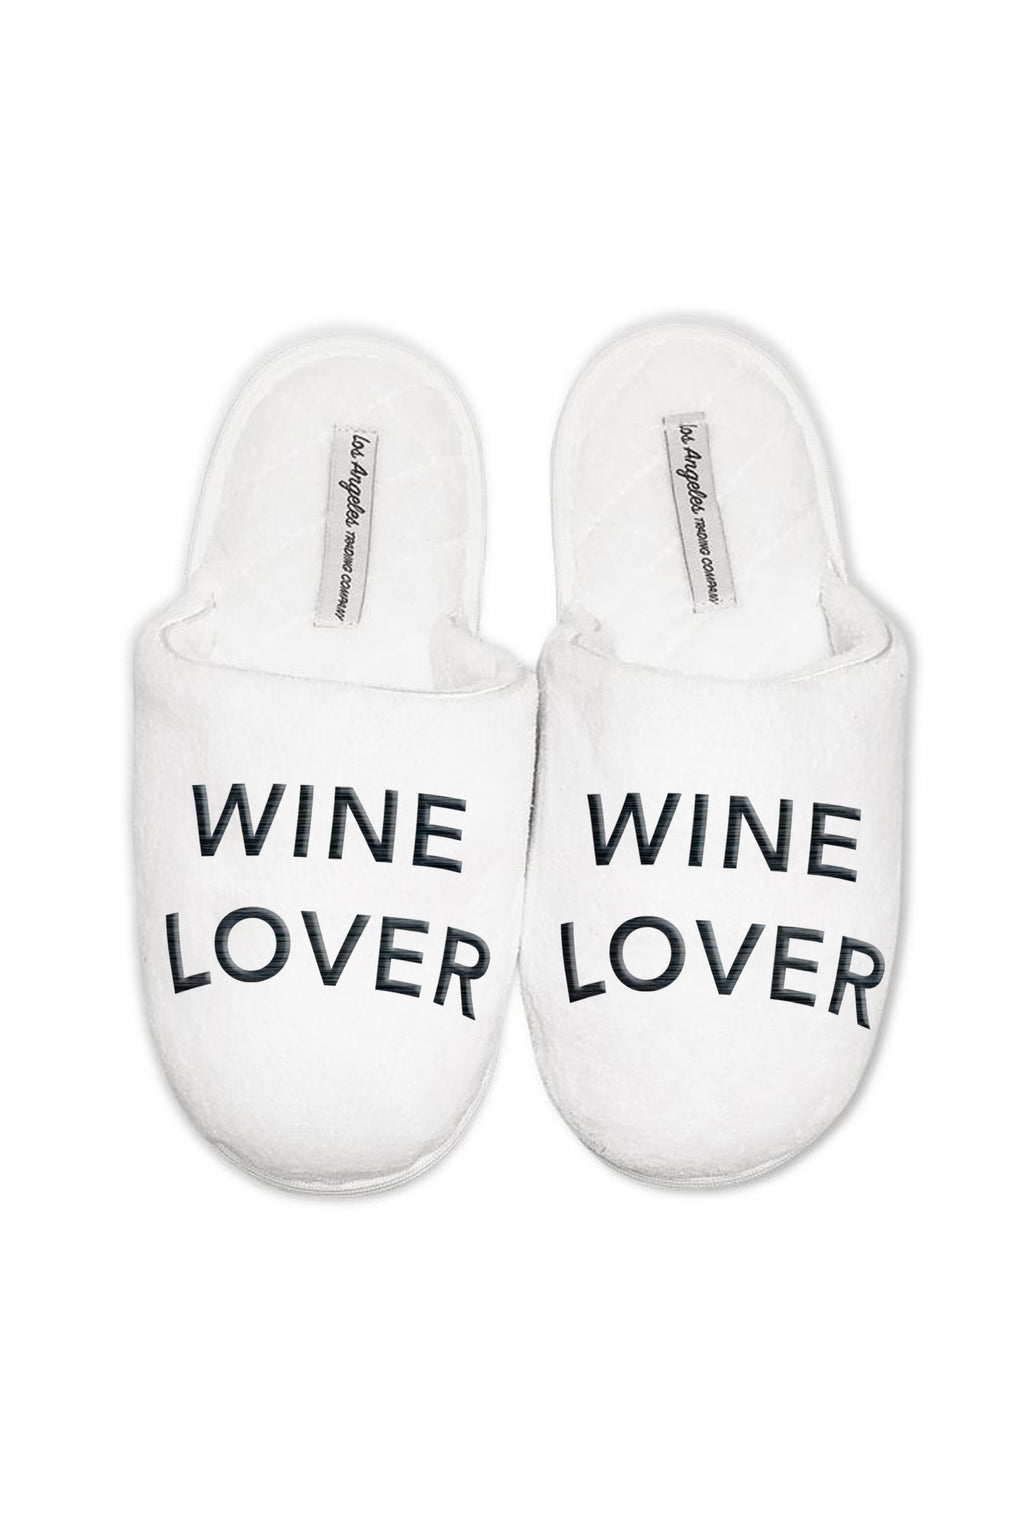 SLIPPERS - Wine Lover